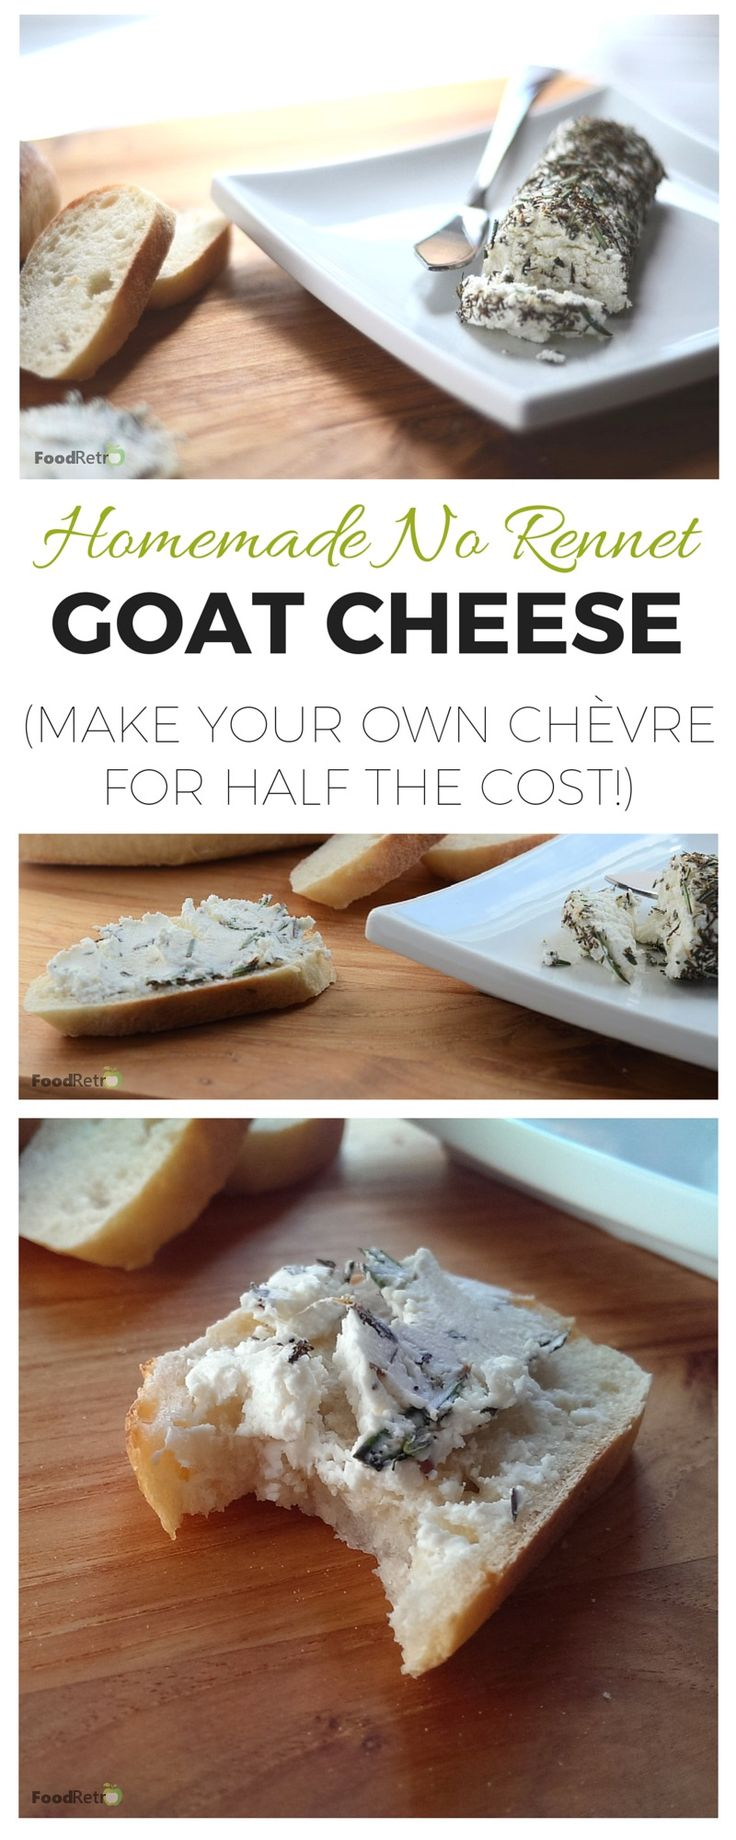 This homemade goat cheese is simple to make! Anybody with a thermometer and an hour of time can do it. No special cheese-making kit or rennet is required, making it an ethical vegetarian chèvre you can crust however you like. And best of all, even with store bought ingredients, it's super frugal--less than half the cost of buying it ready made!